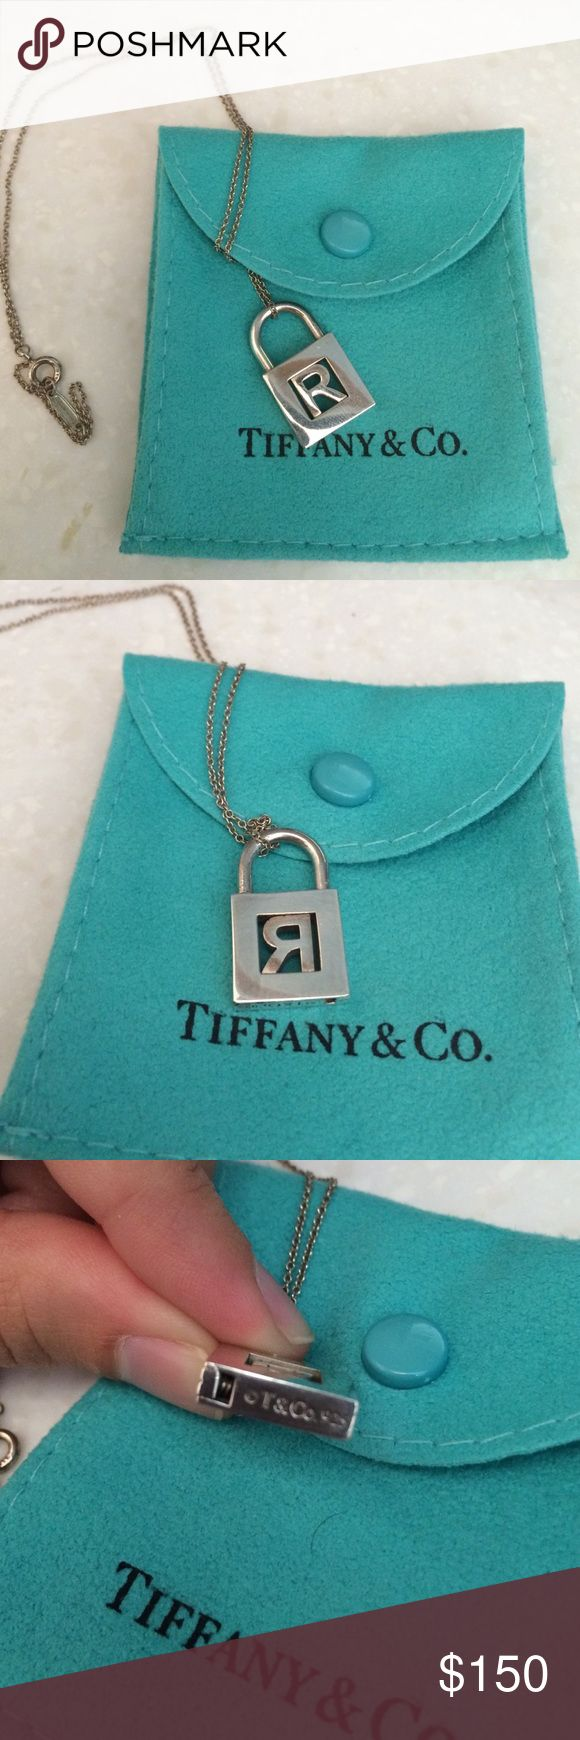 "Tiffany & Co necklace Tiffany & Co ""R"" initial padlock pendant. Necklace was only worn a few time and comes with original Tiffany & Co jewelry pouch. No longer sold at Tiffany's. Tiffany & Co. Jewelry Necklaces"